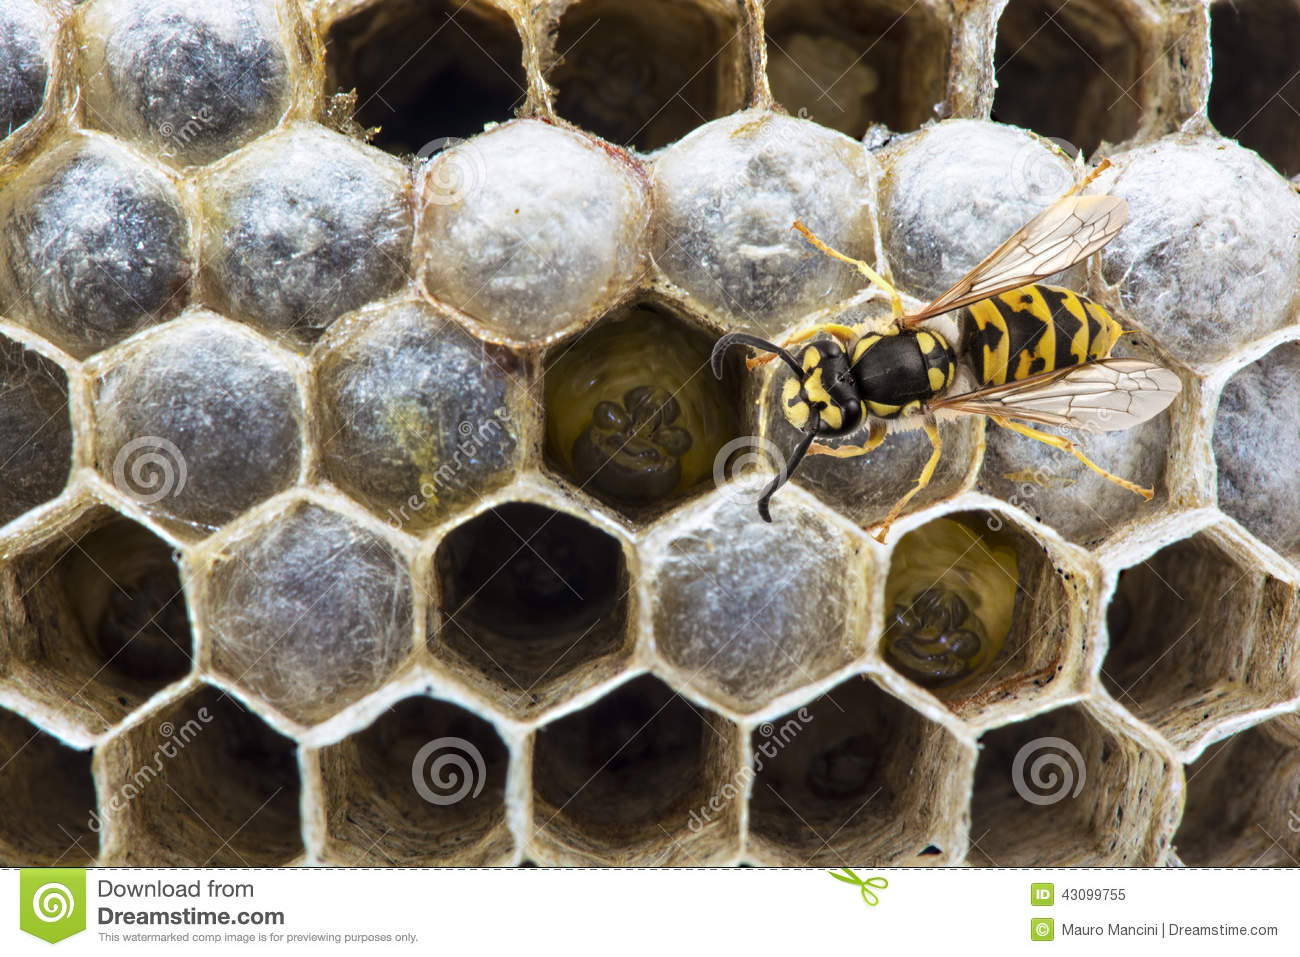 Wasp on the nest